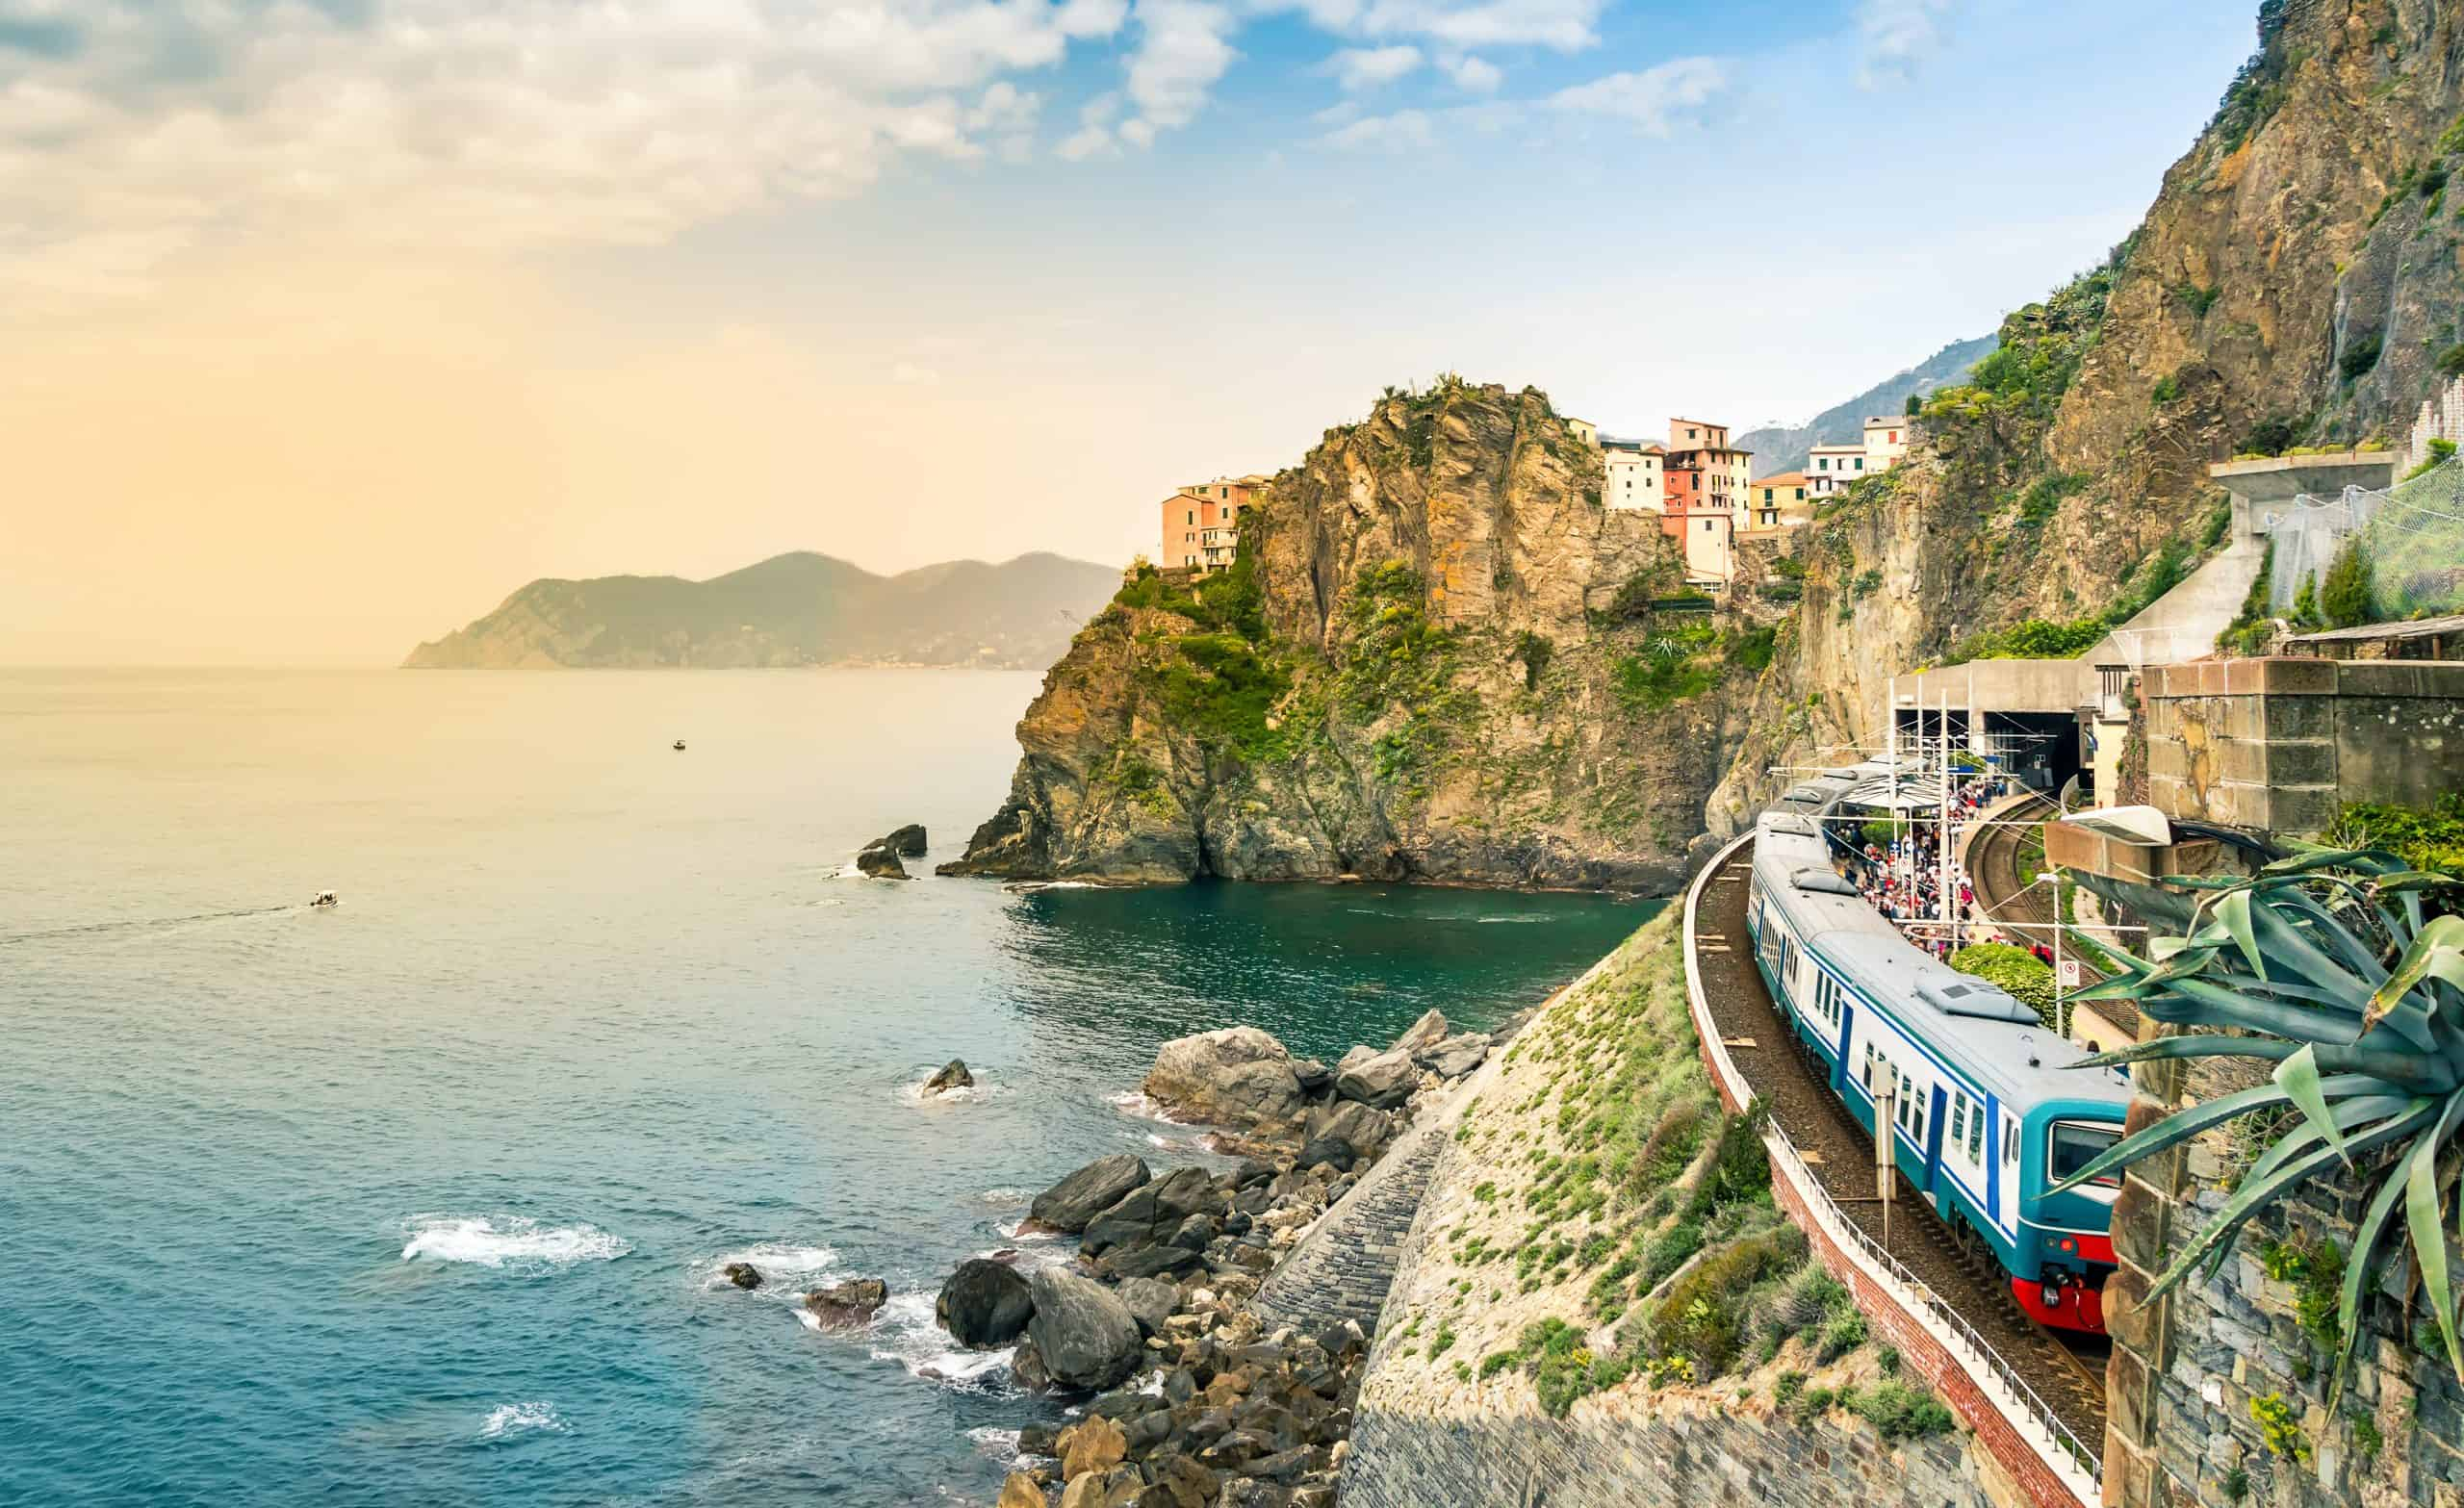 Getting from Florence to Cinque Terre by train